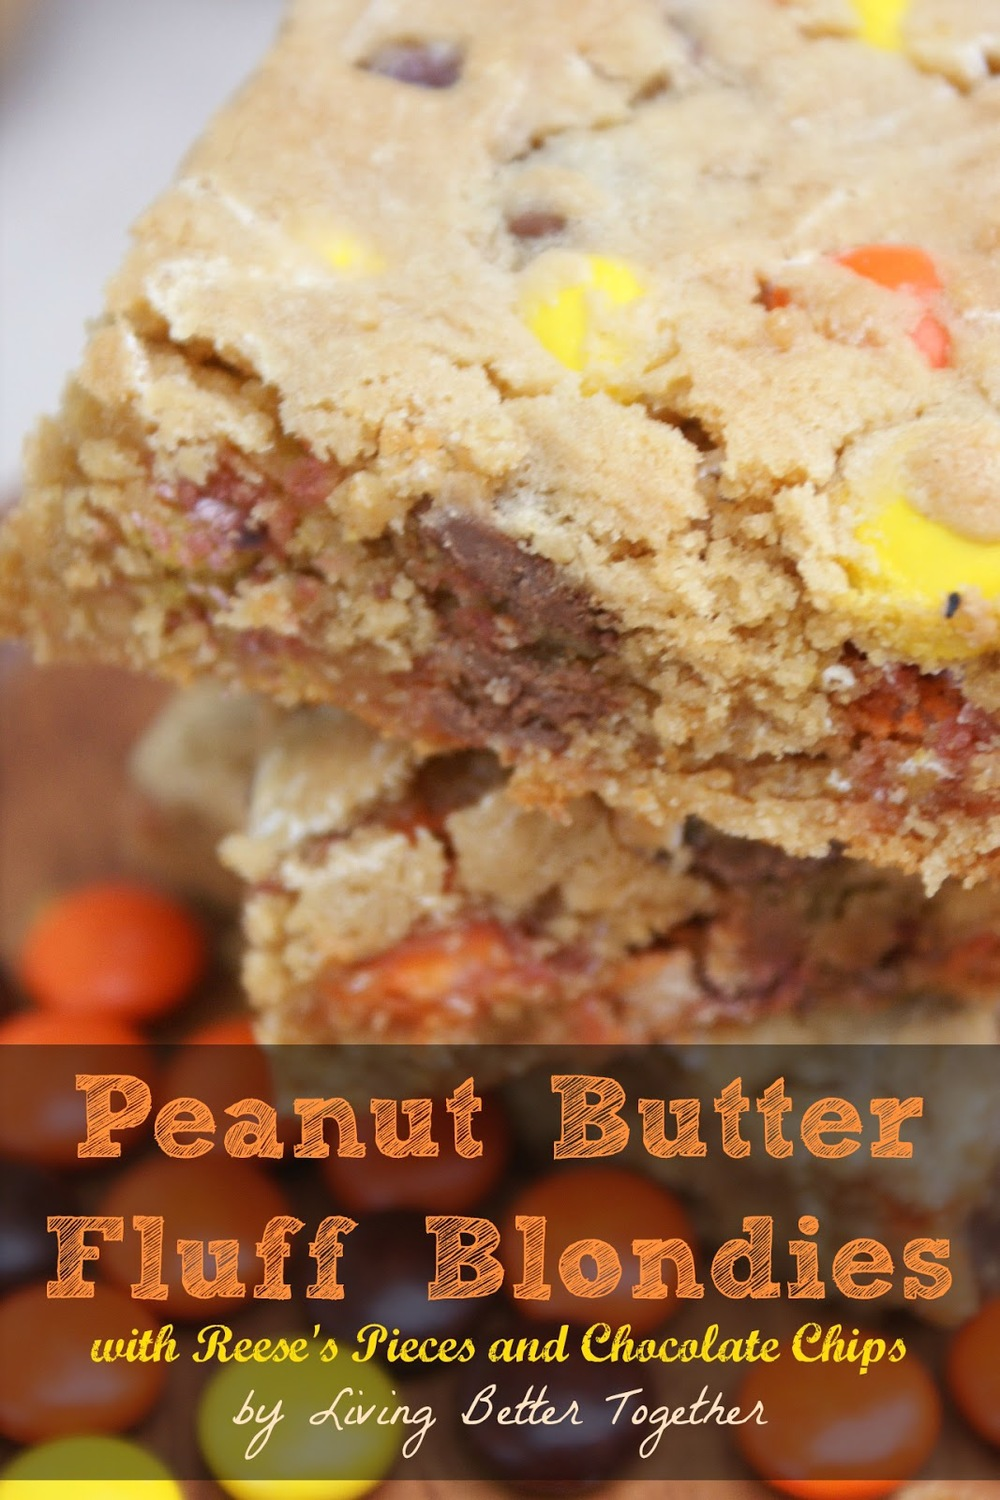 Peanut Butter Fluff Blondies.JPG